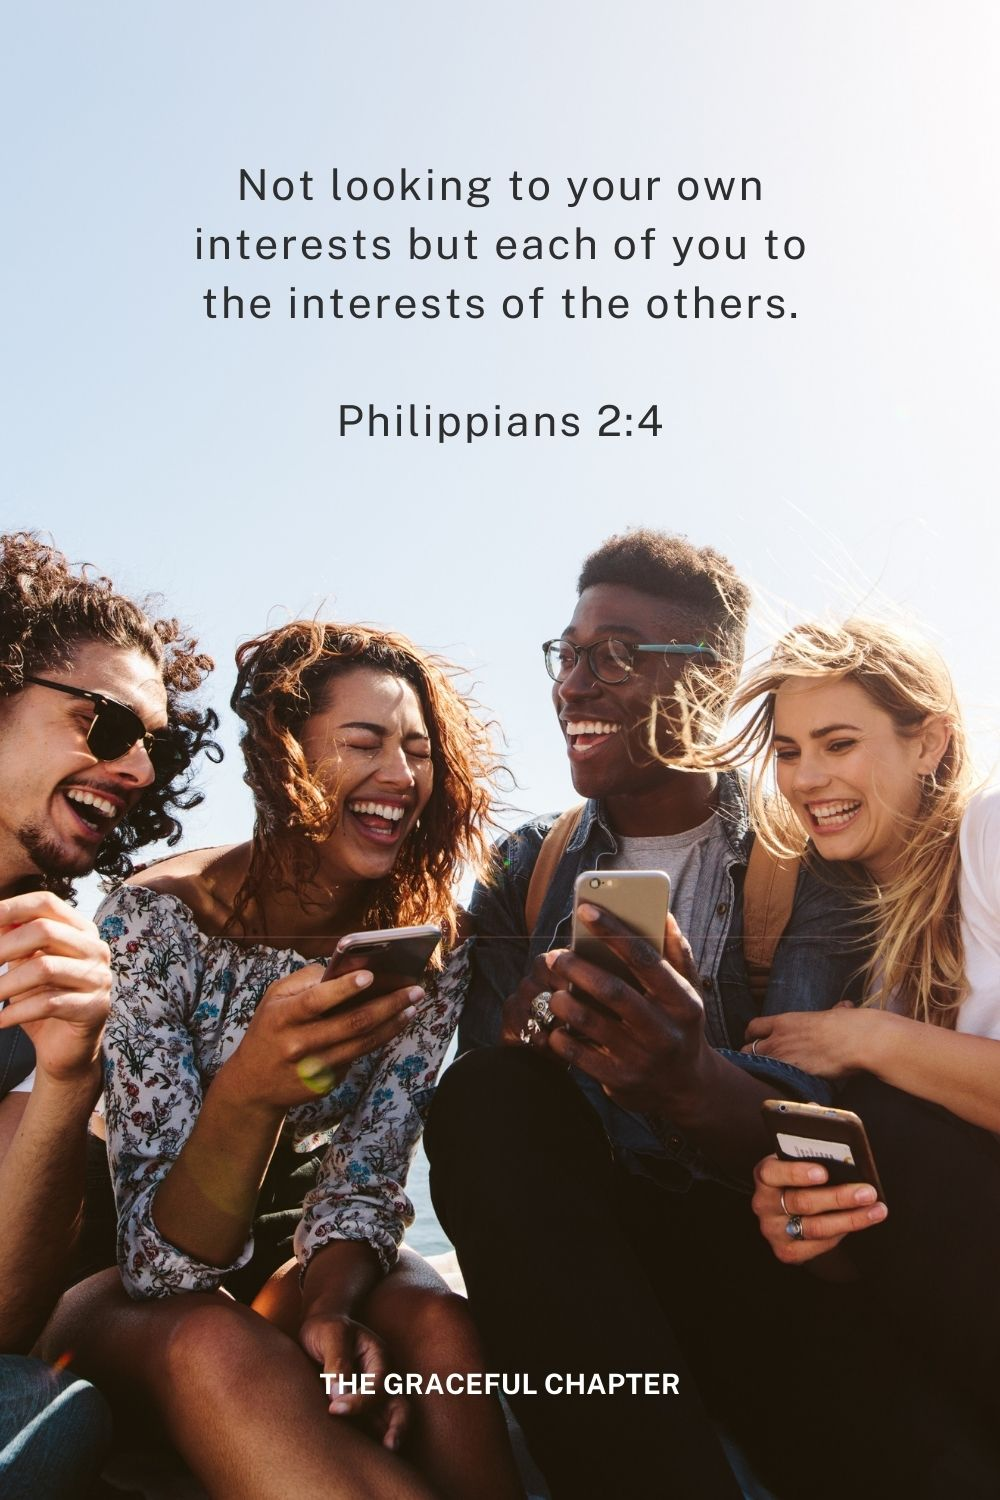 Not looking to your own interests but each of you to the interests of the others. Philippians 2:4